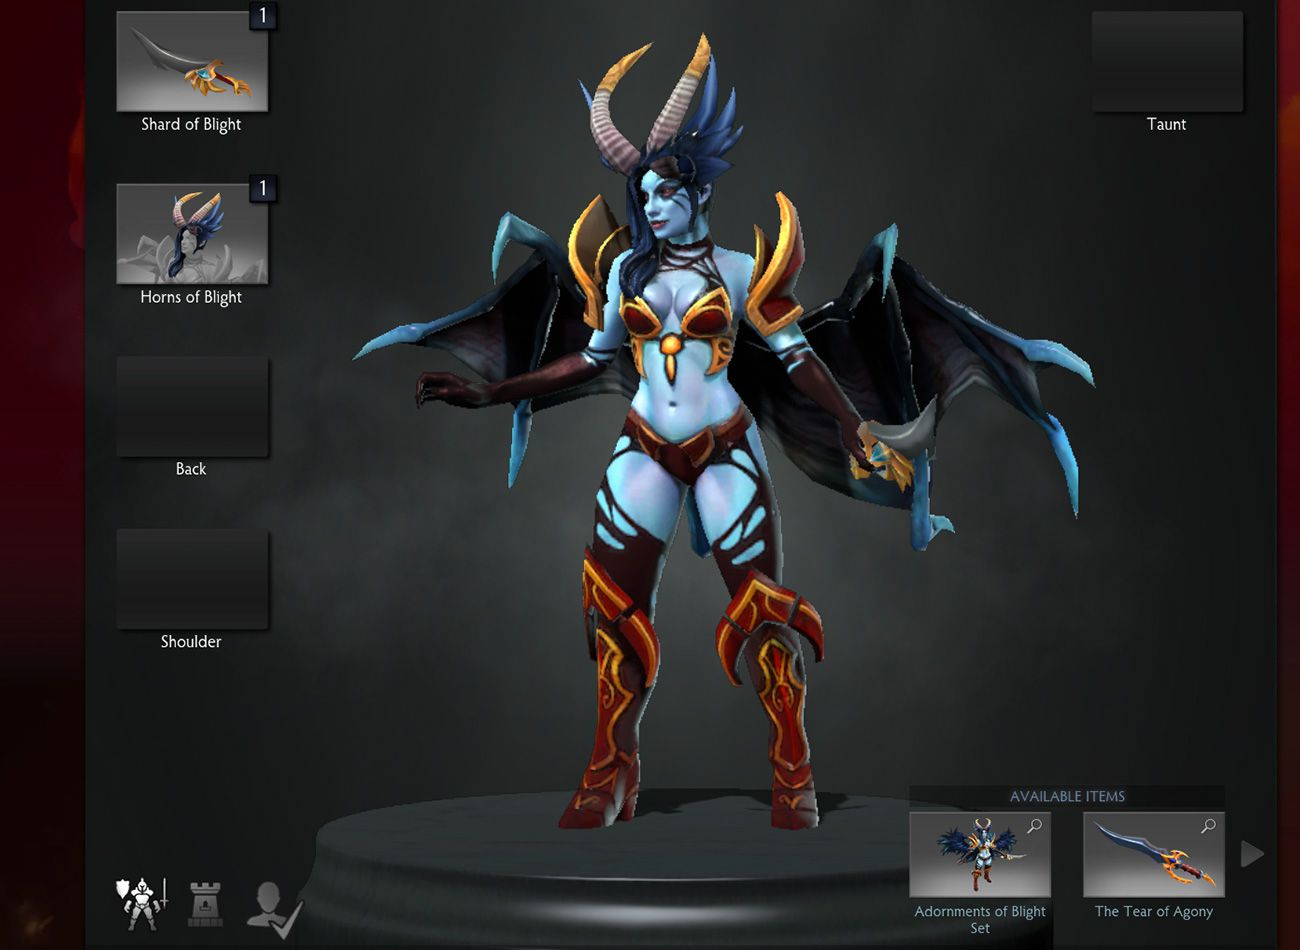 Dota 2: the 1,000-hour review | The Verge